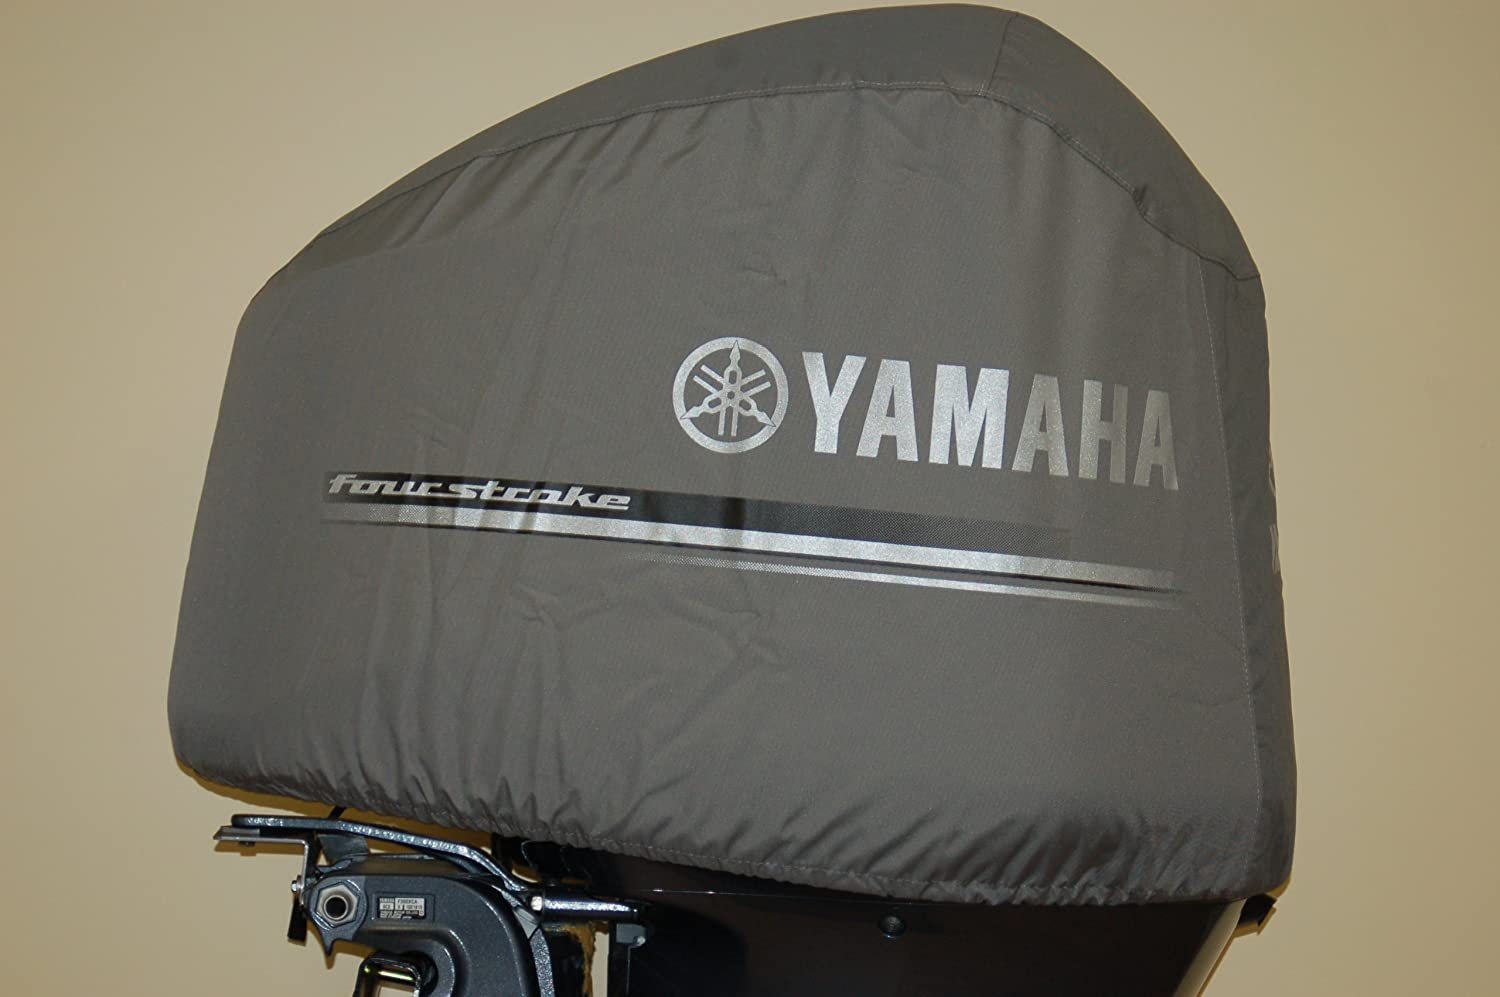 Yamaha OEM Heavy-Duty 4.2L Offshore Outboard Motor Cover MAR-MTRCV-F4-2L